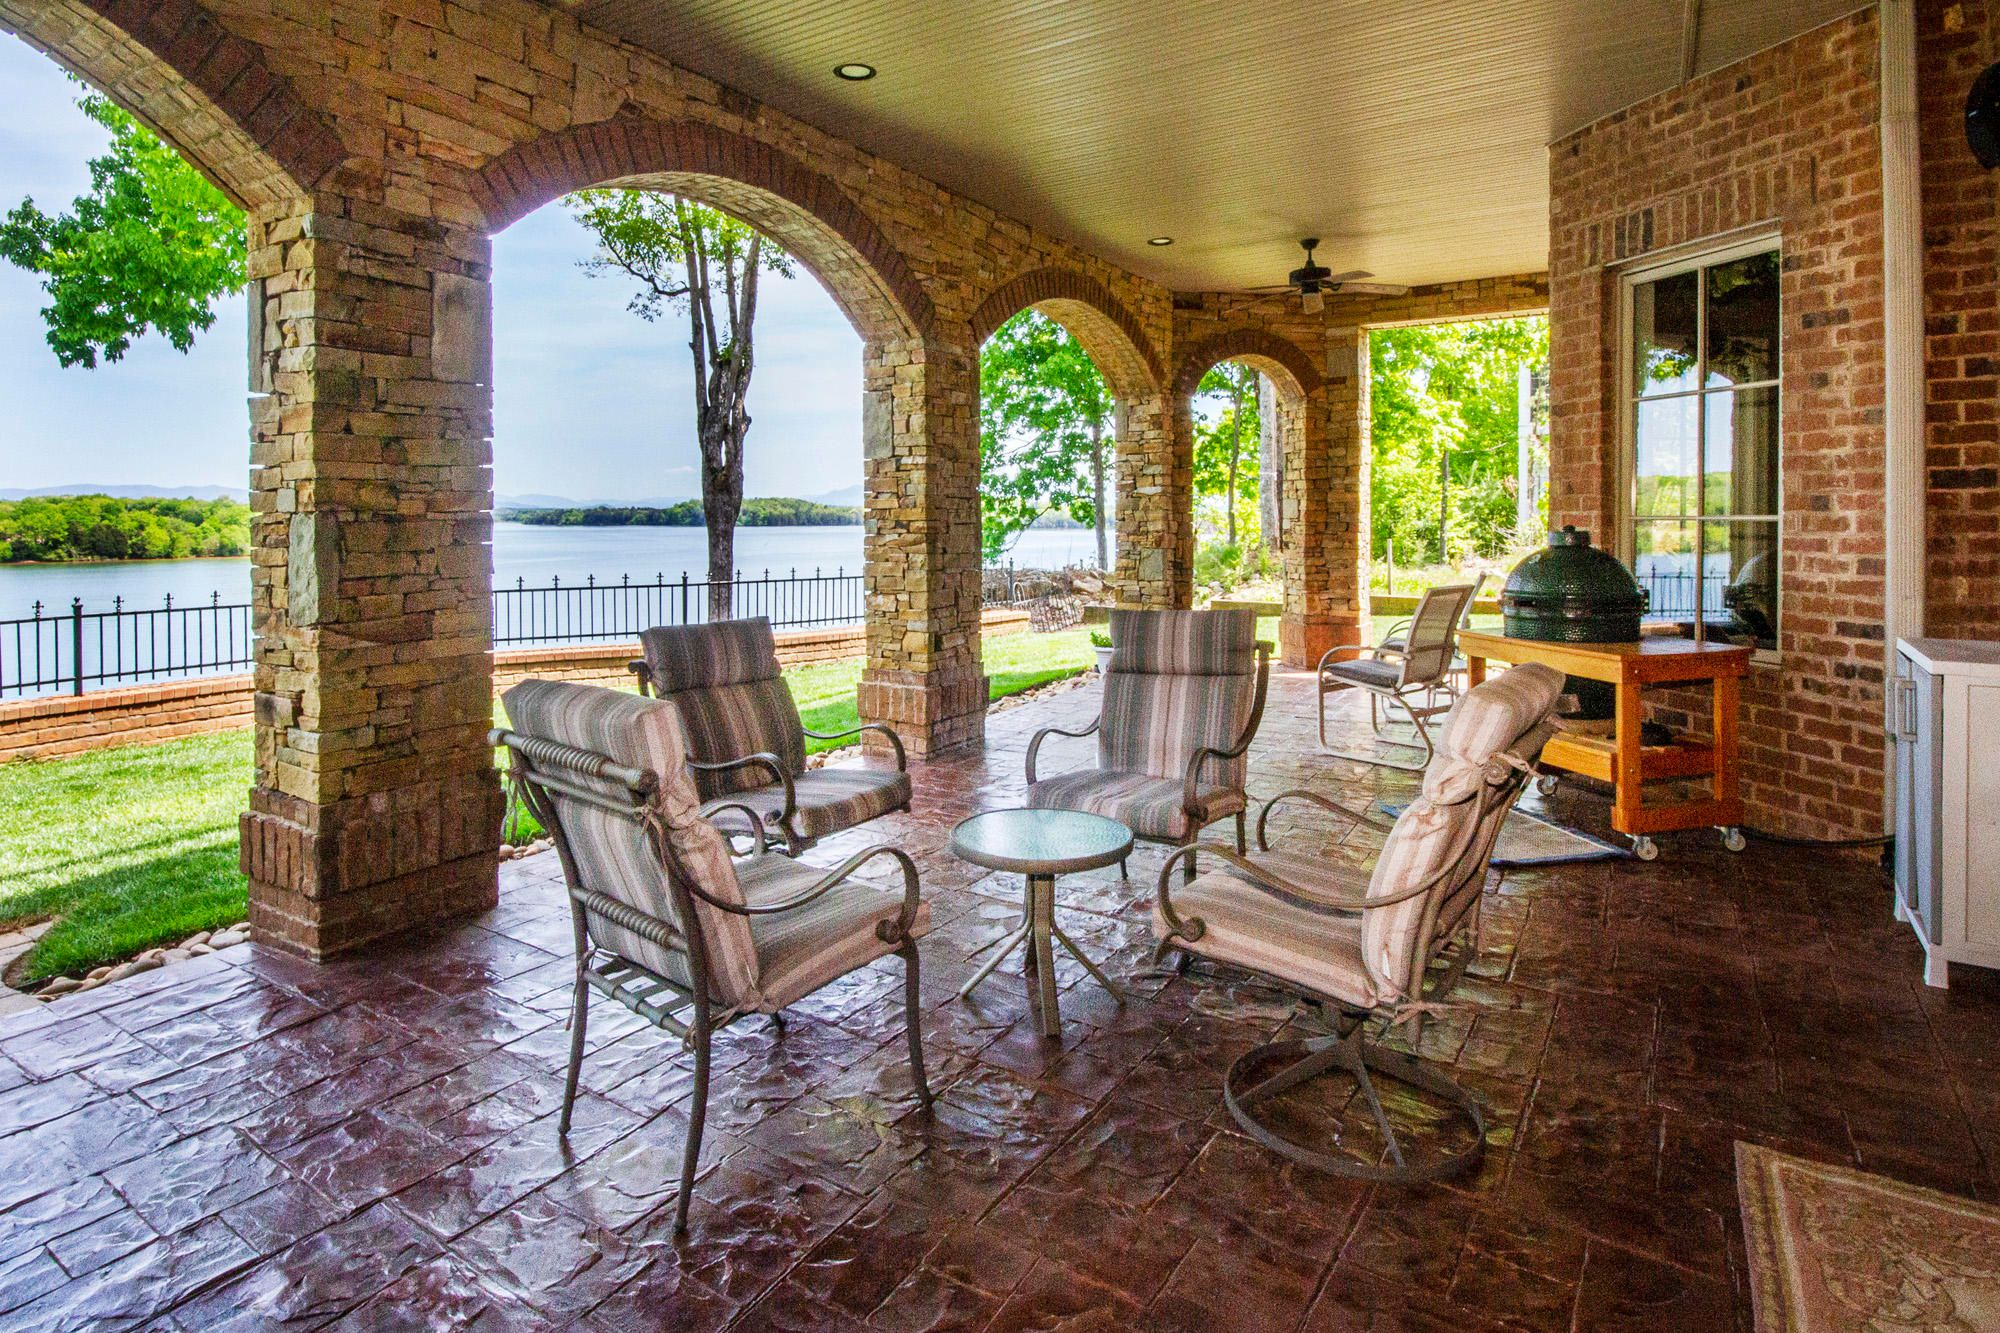 Gorgeous Covered Patio with Views!